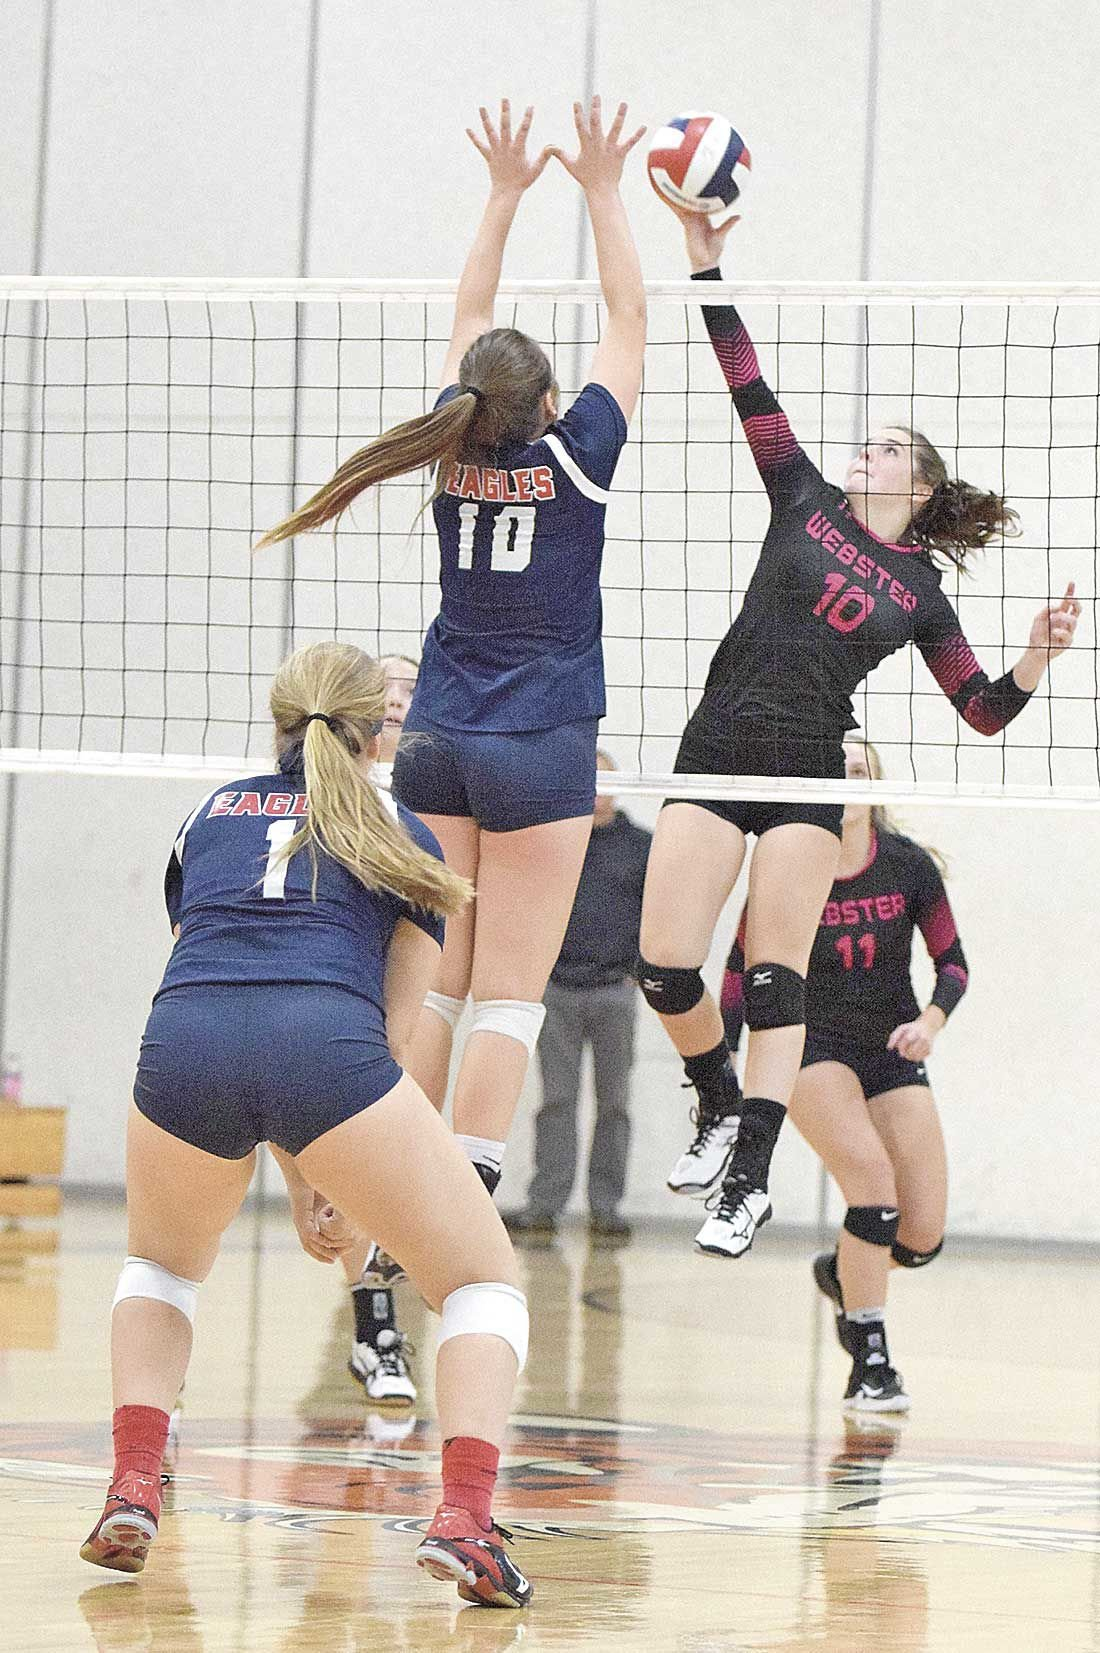 Eagles take 'Battle of the Claws'